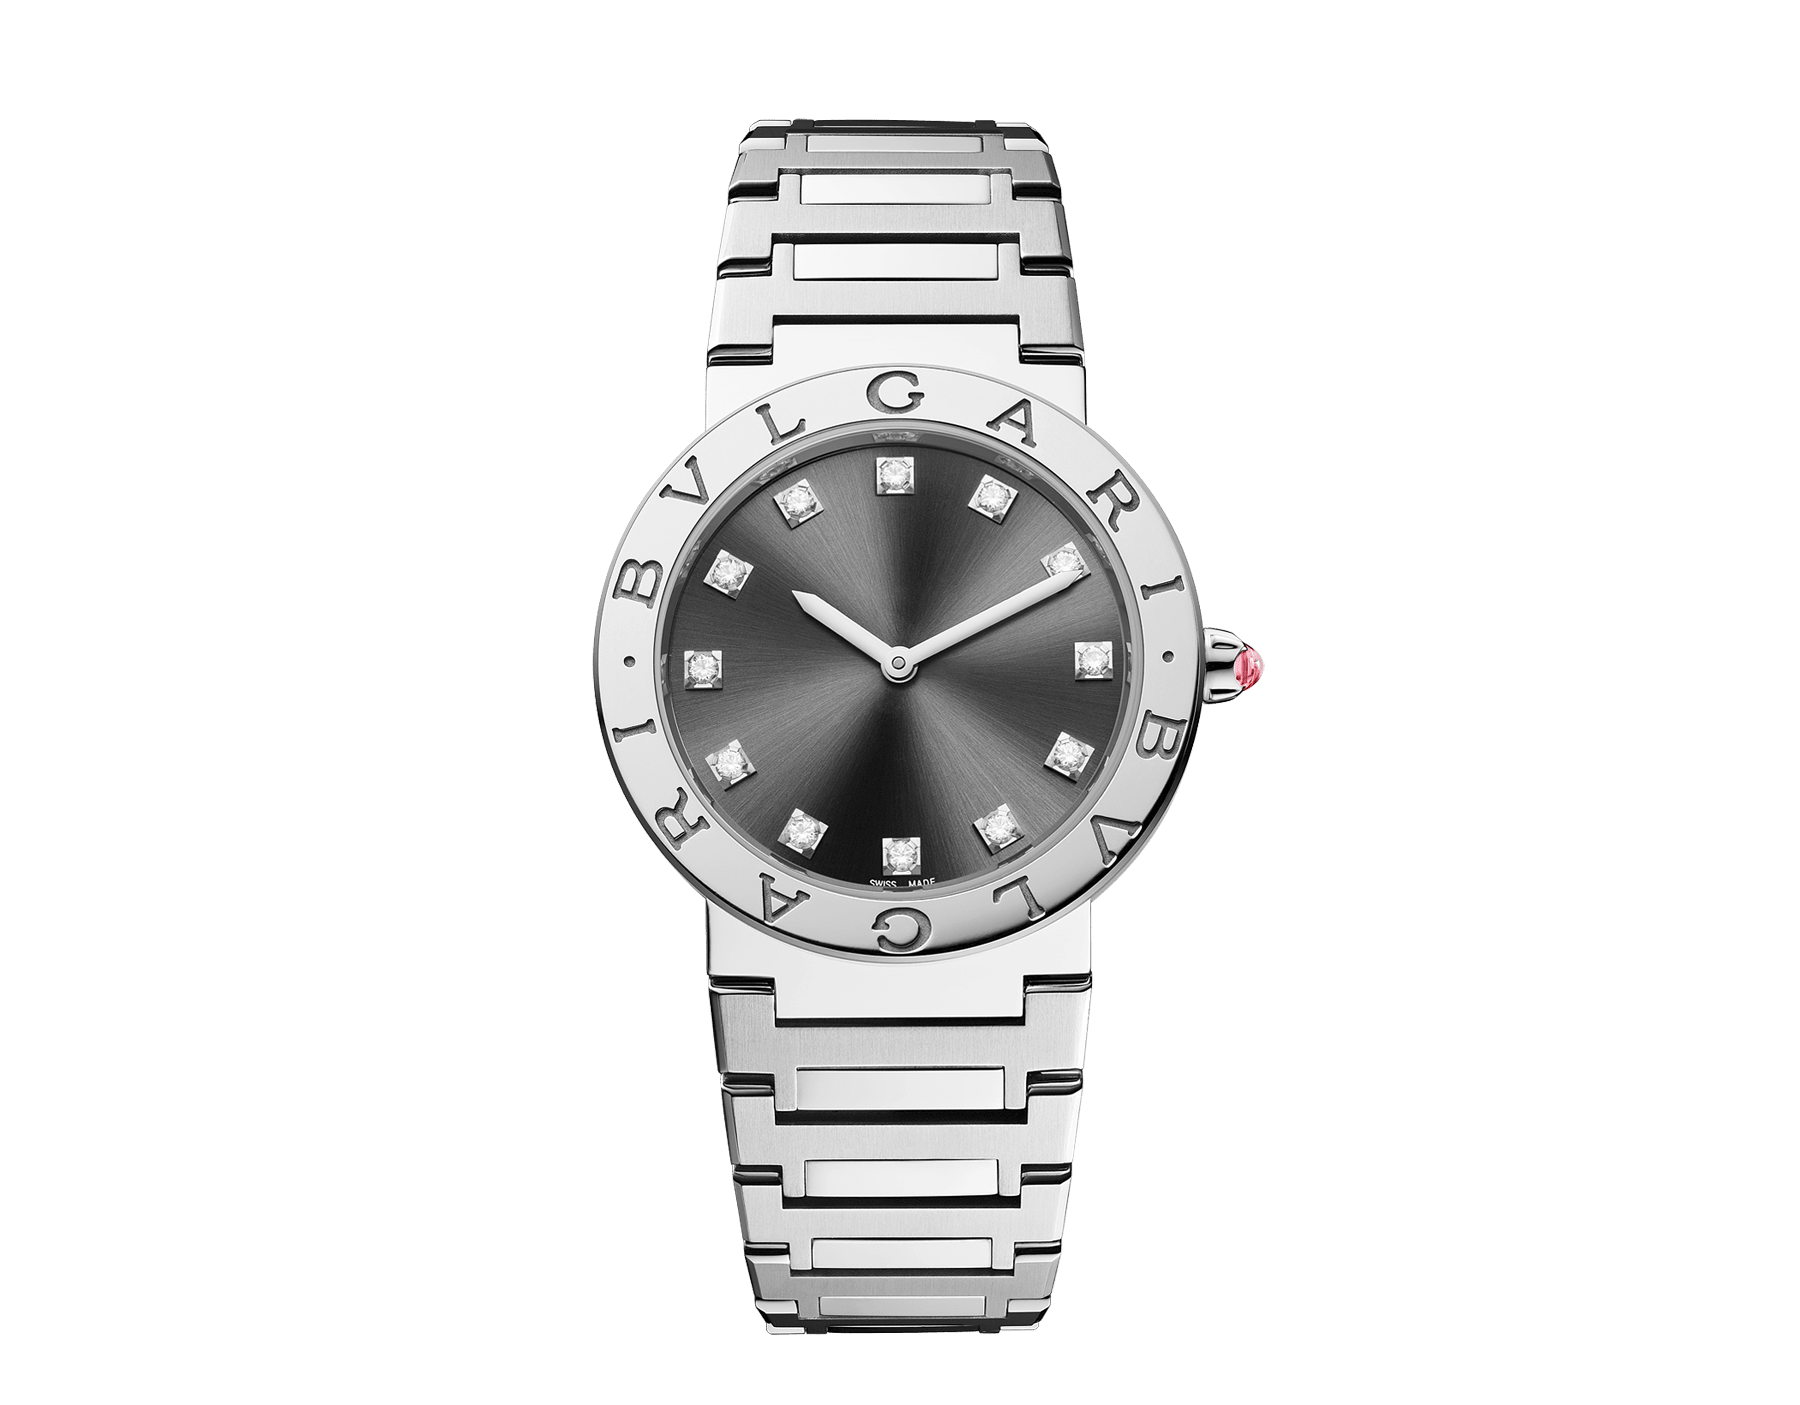 BVLGARI BVLGARI LADY watch in stainless steel case and bracelet, stainless steel bezel engraved with double logo, anthracite satiné soleil lacquered dial and diamond indexes 102923 image 1